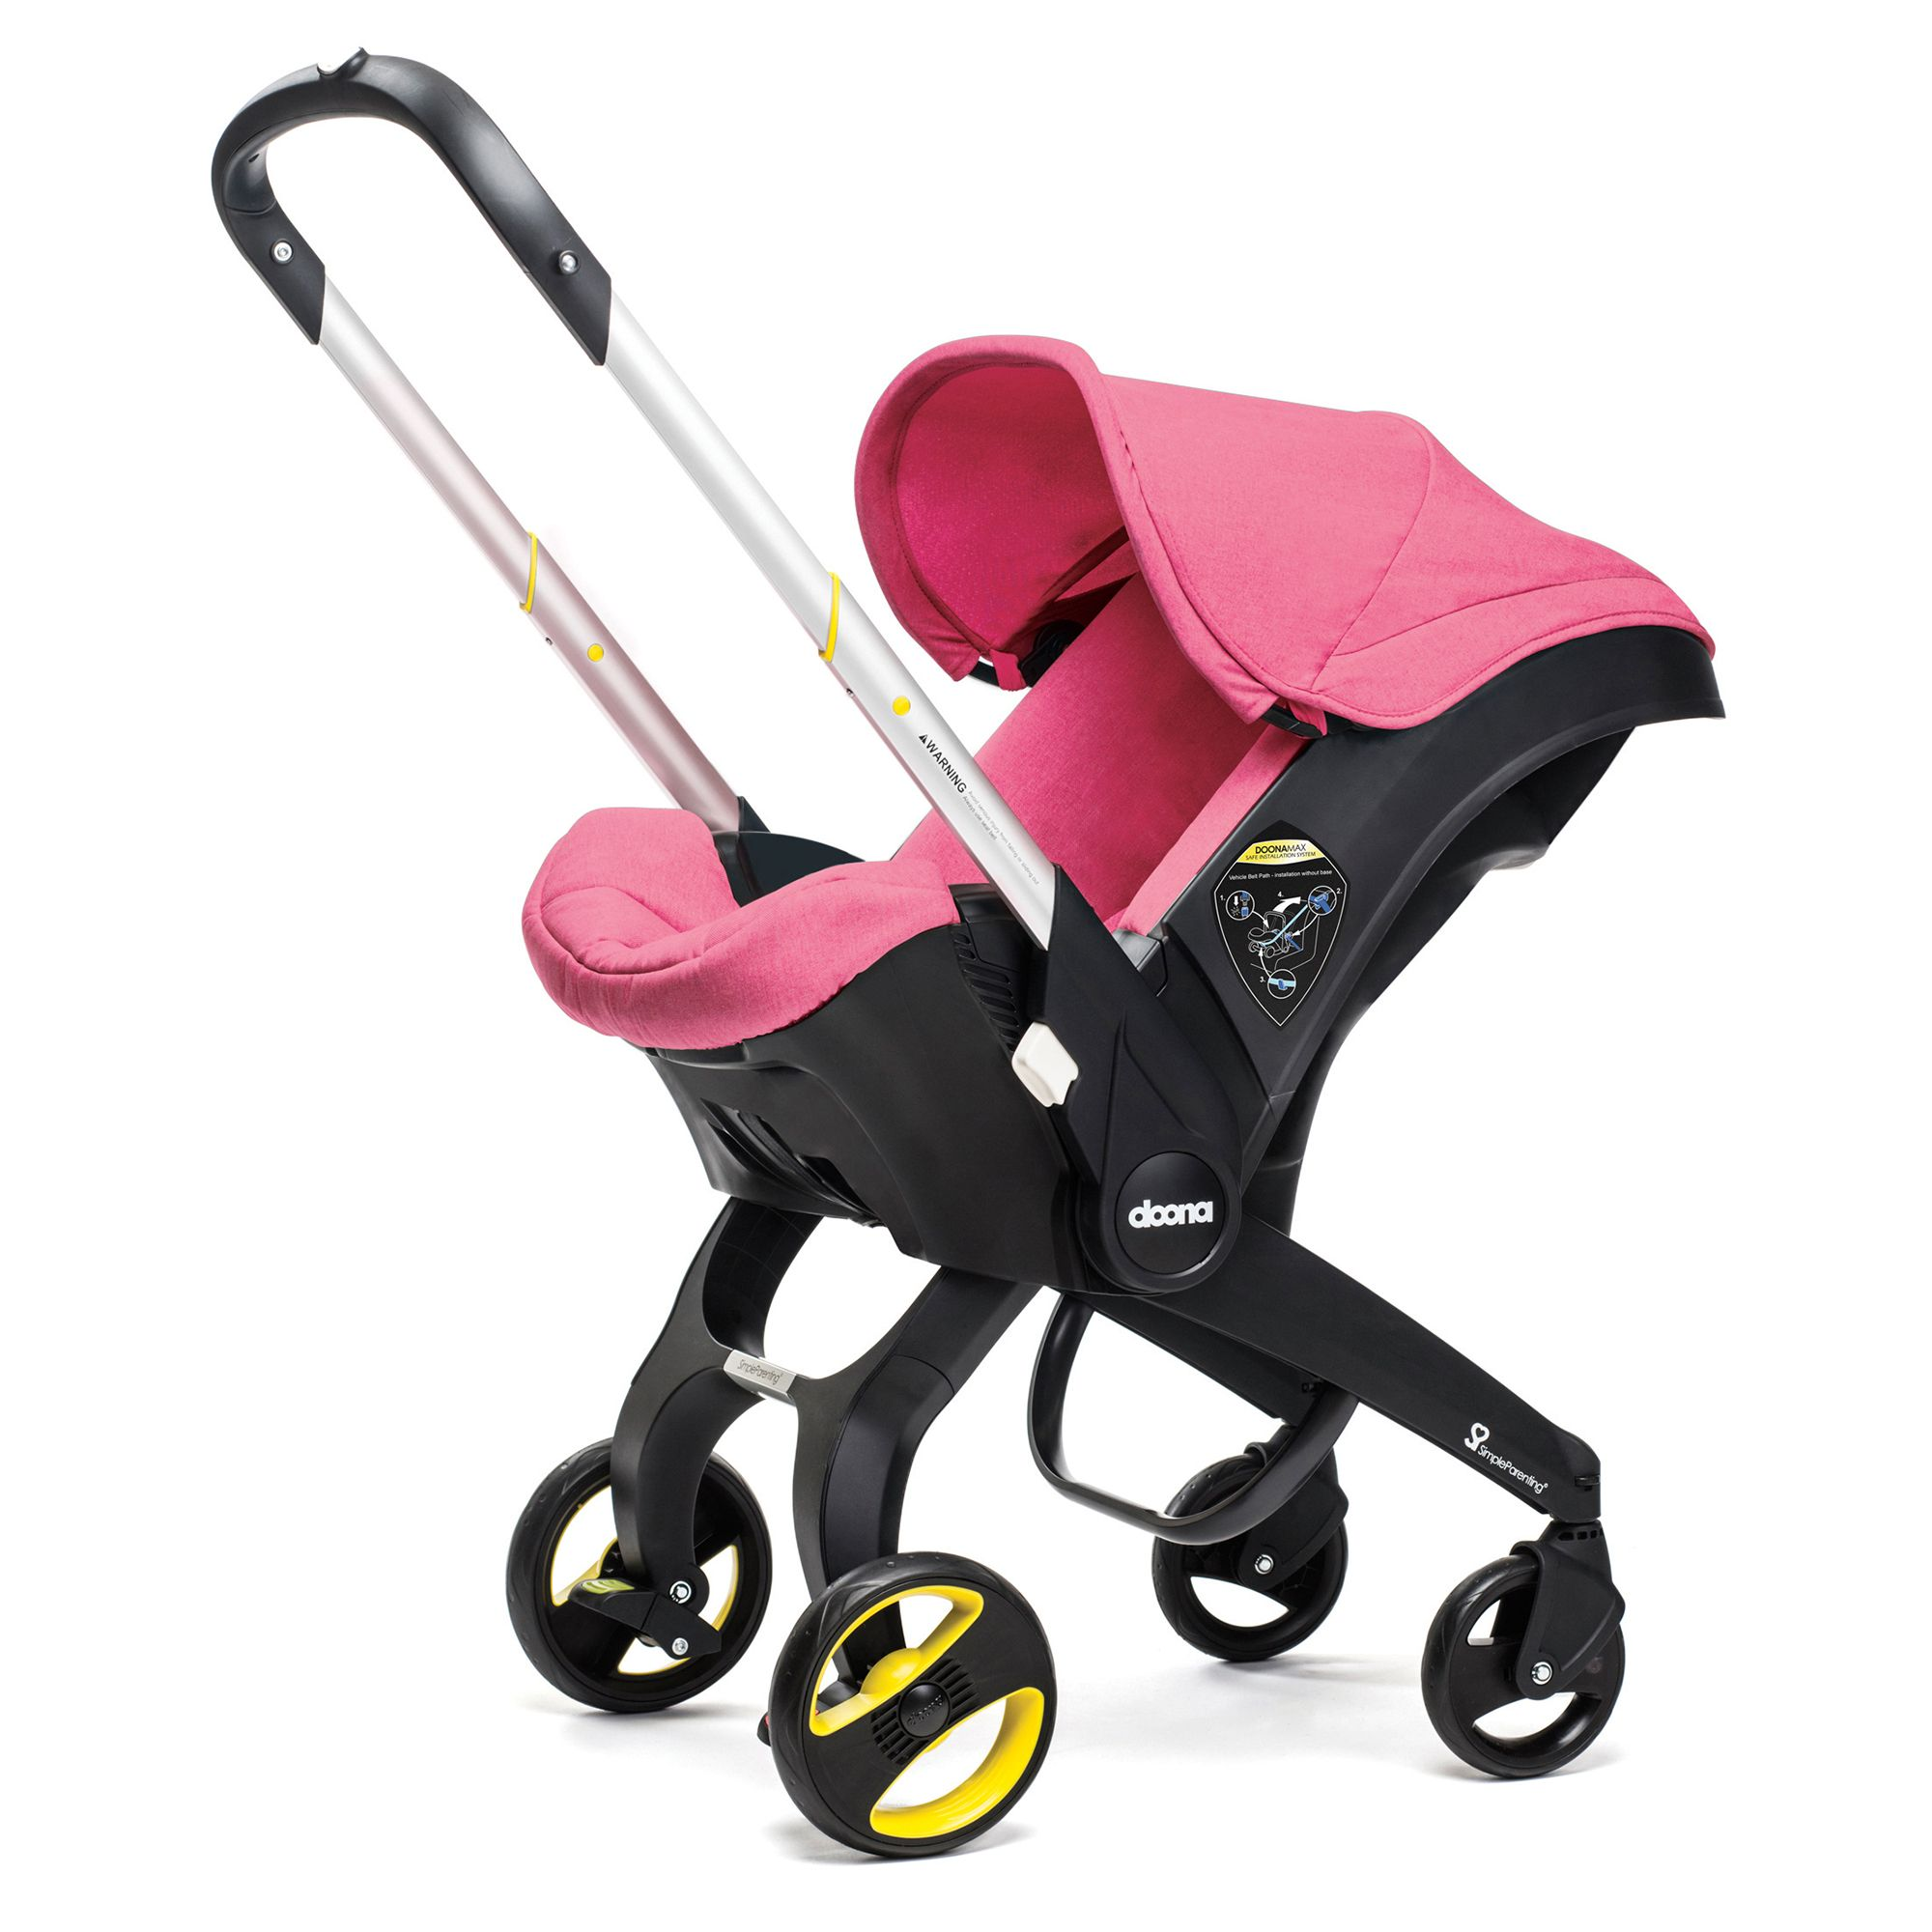 Doona™ Infant Car Seat Stroller with LATCH Base